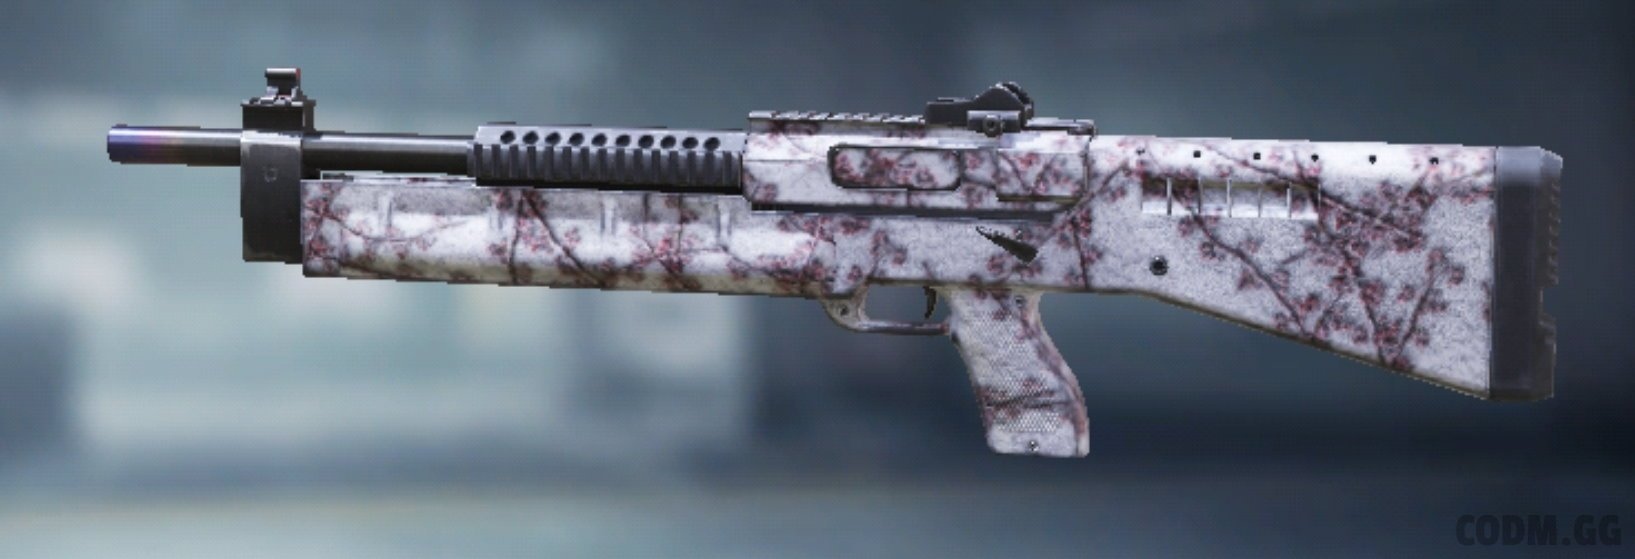 HS2126 Hereafter, Uncommon camo in Call of Duty Mobile